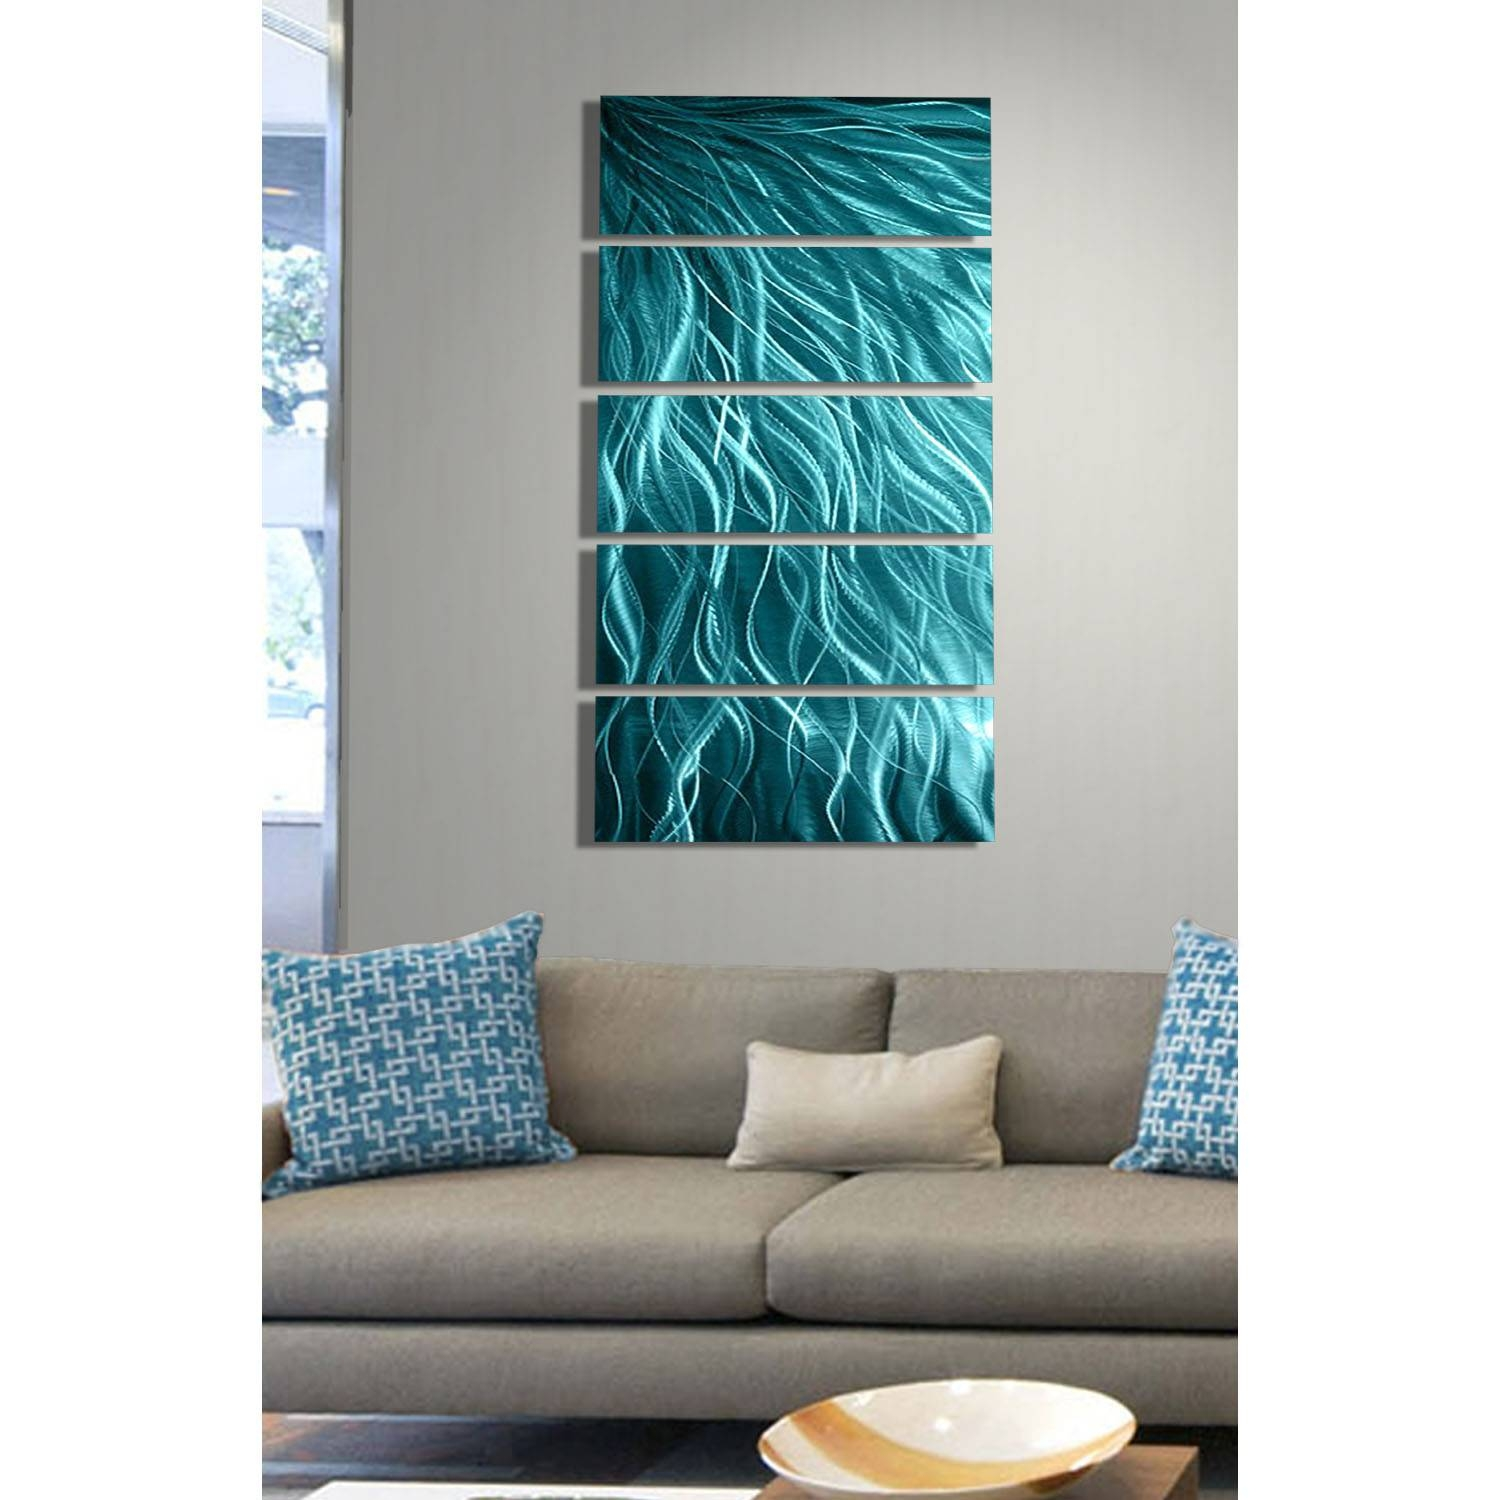 Aqua Sea Grass – Aqua Blue Metal Wall Art – 5 Panel Wall Décor In Most Up To Date Green Metal Wall Art (View 3 of 20)